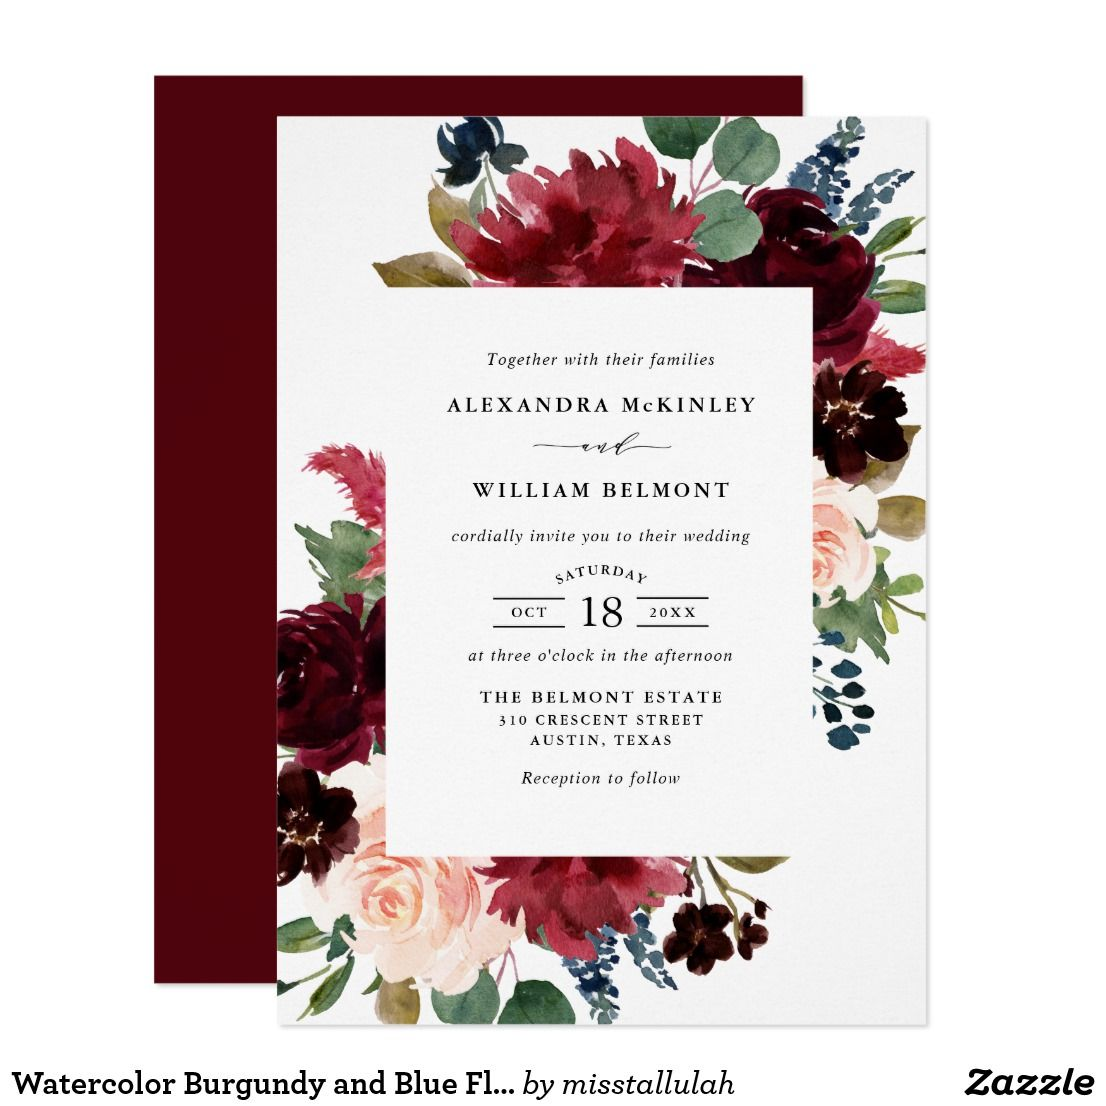 Watercolor Burgundy and Blue Flowers Wedding Invitation | Colliewood ...